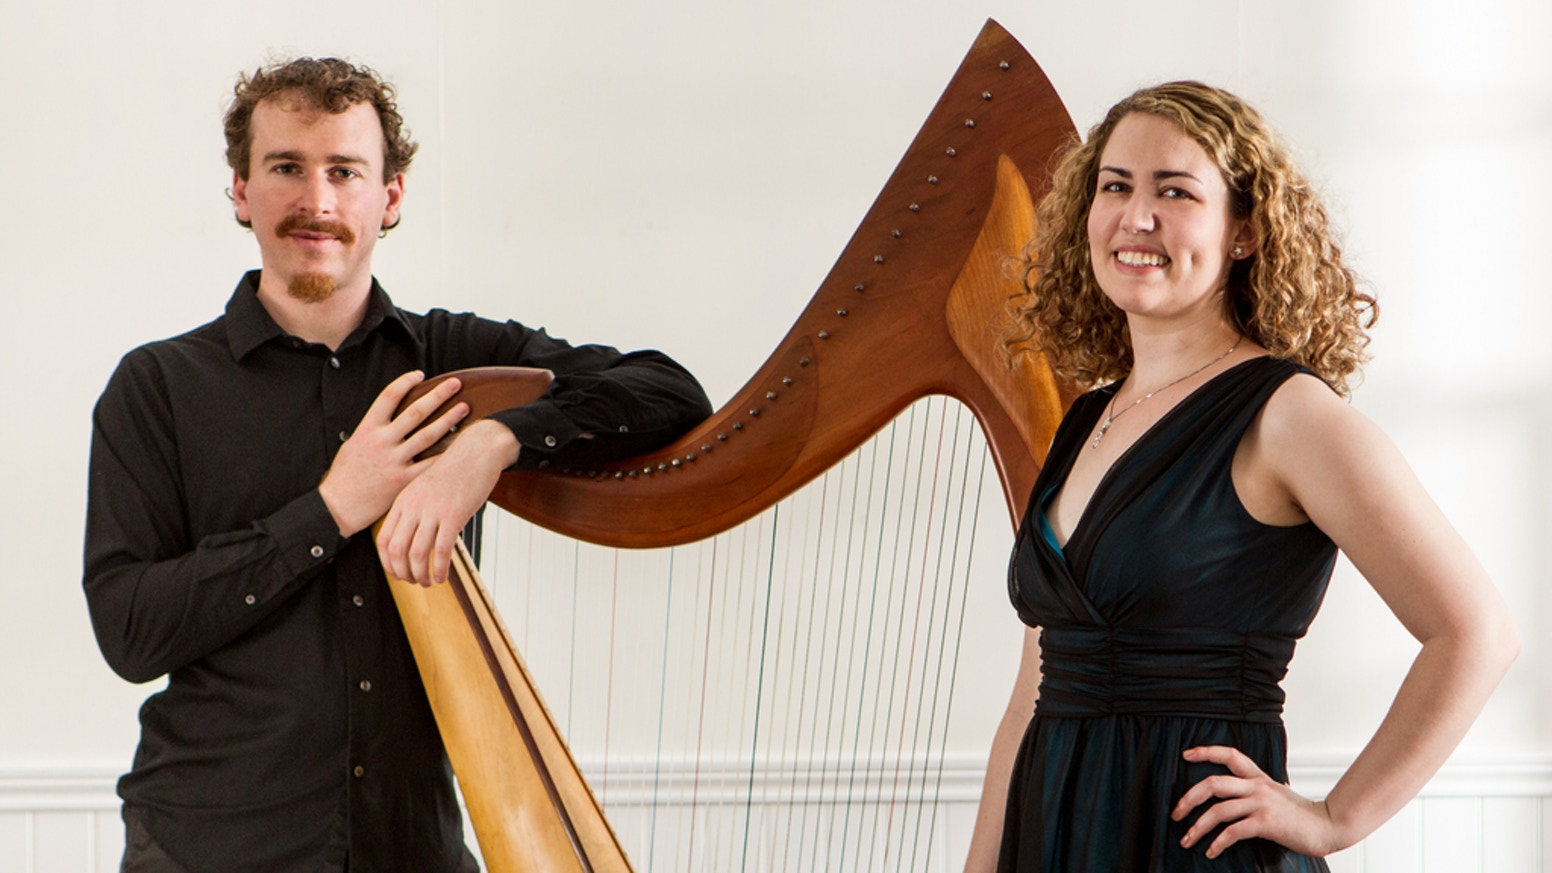 Soprano & harp Christmas album! Phoebe Gildea & Noah Brenner had a Jolly July revving up for their first joint album. Release date: December 2, 2016.